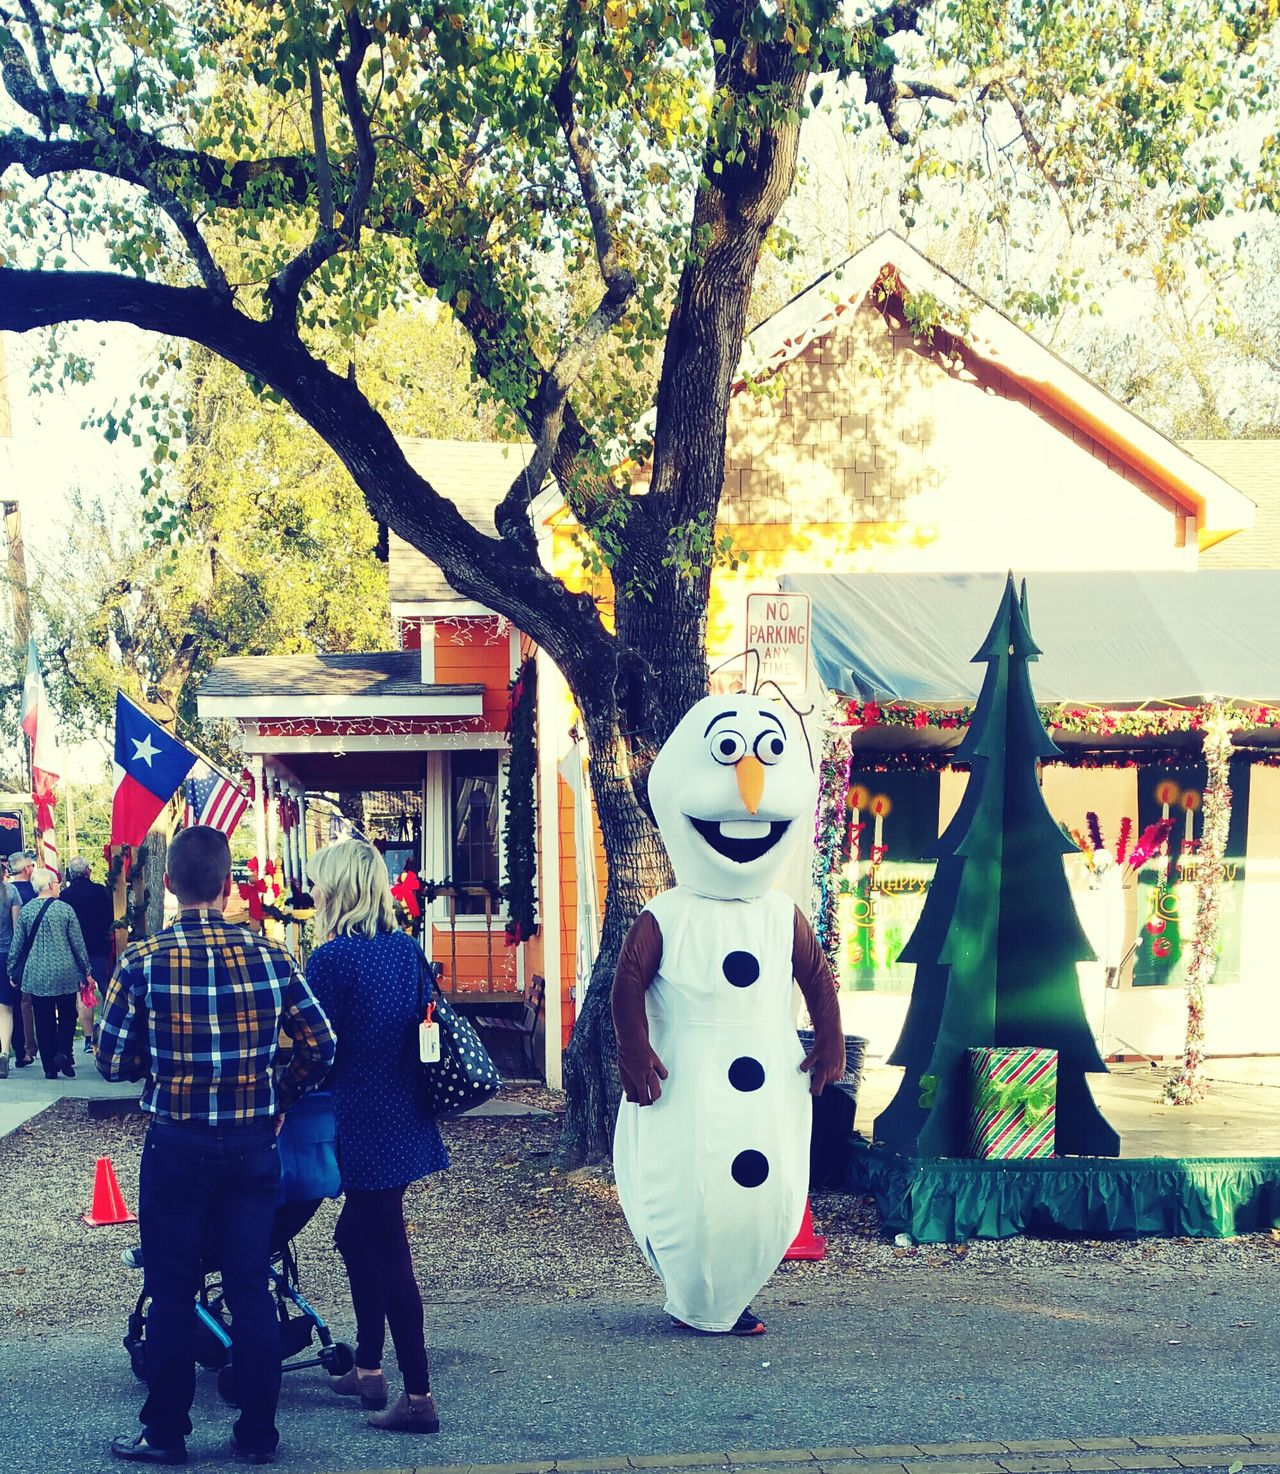 Enjoy The New Normal Good Ole Olaf. Lol.😄 Tree Outdoors Day People Standing Popular Photos EyeEm Gallery Costumes Colorful Outdoors Christmas Decoration Local Attractions Olaf